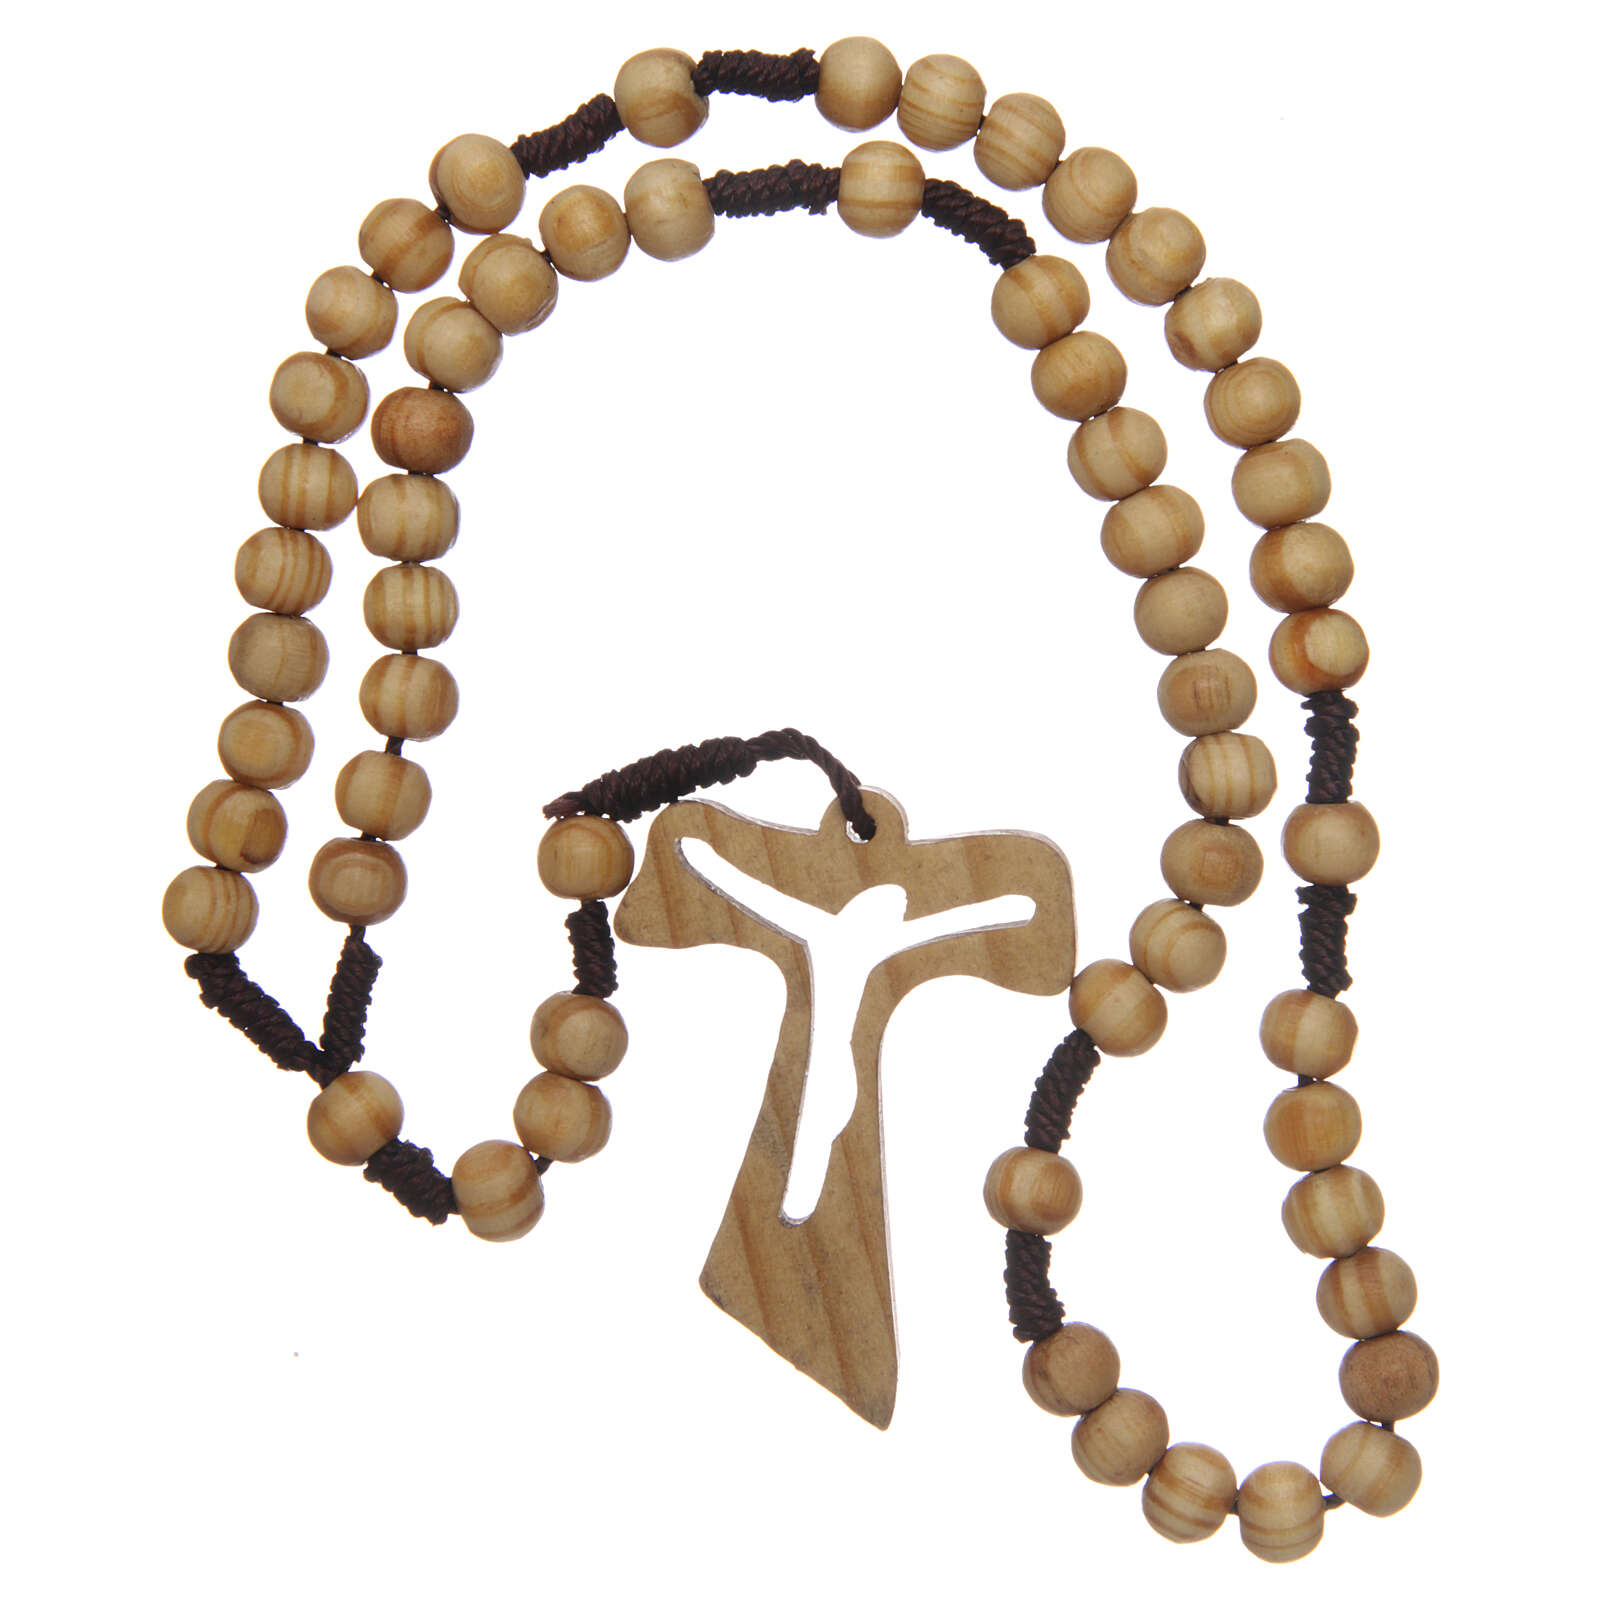 Olive wood rosary round beads 7 mm with tau cross 4